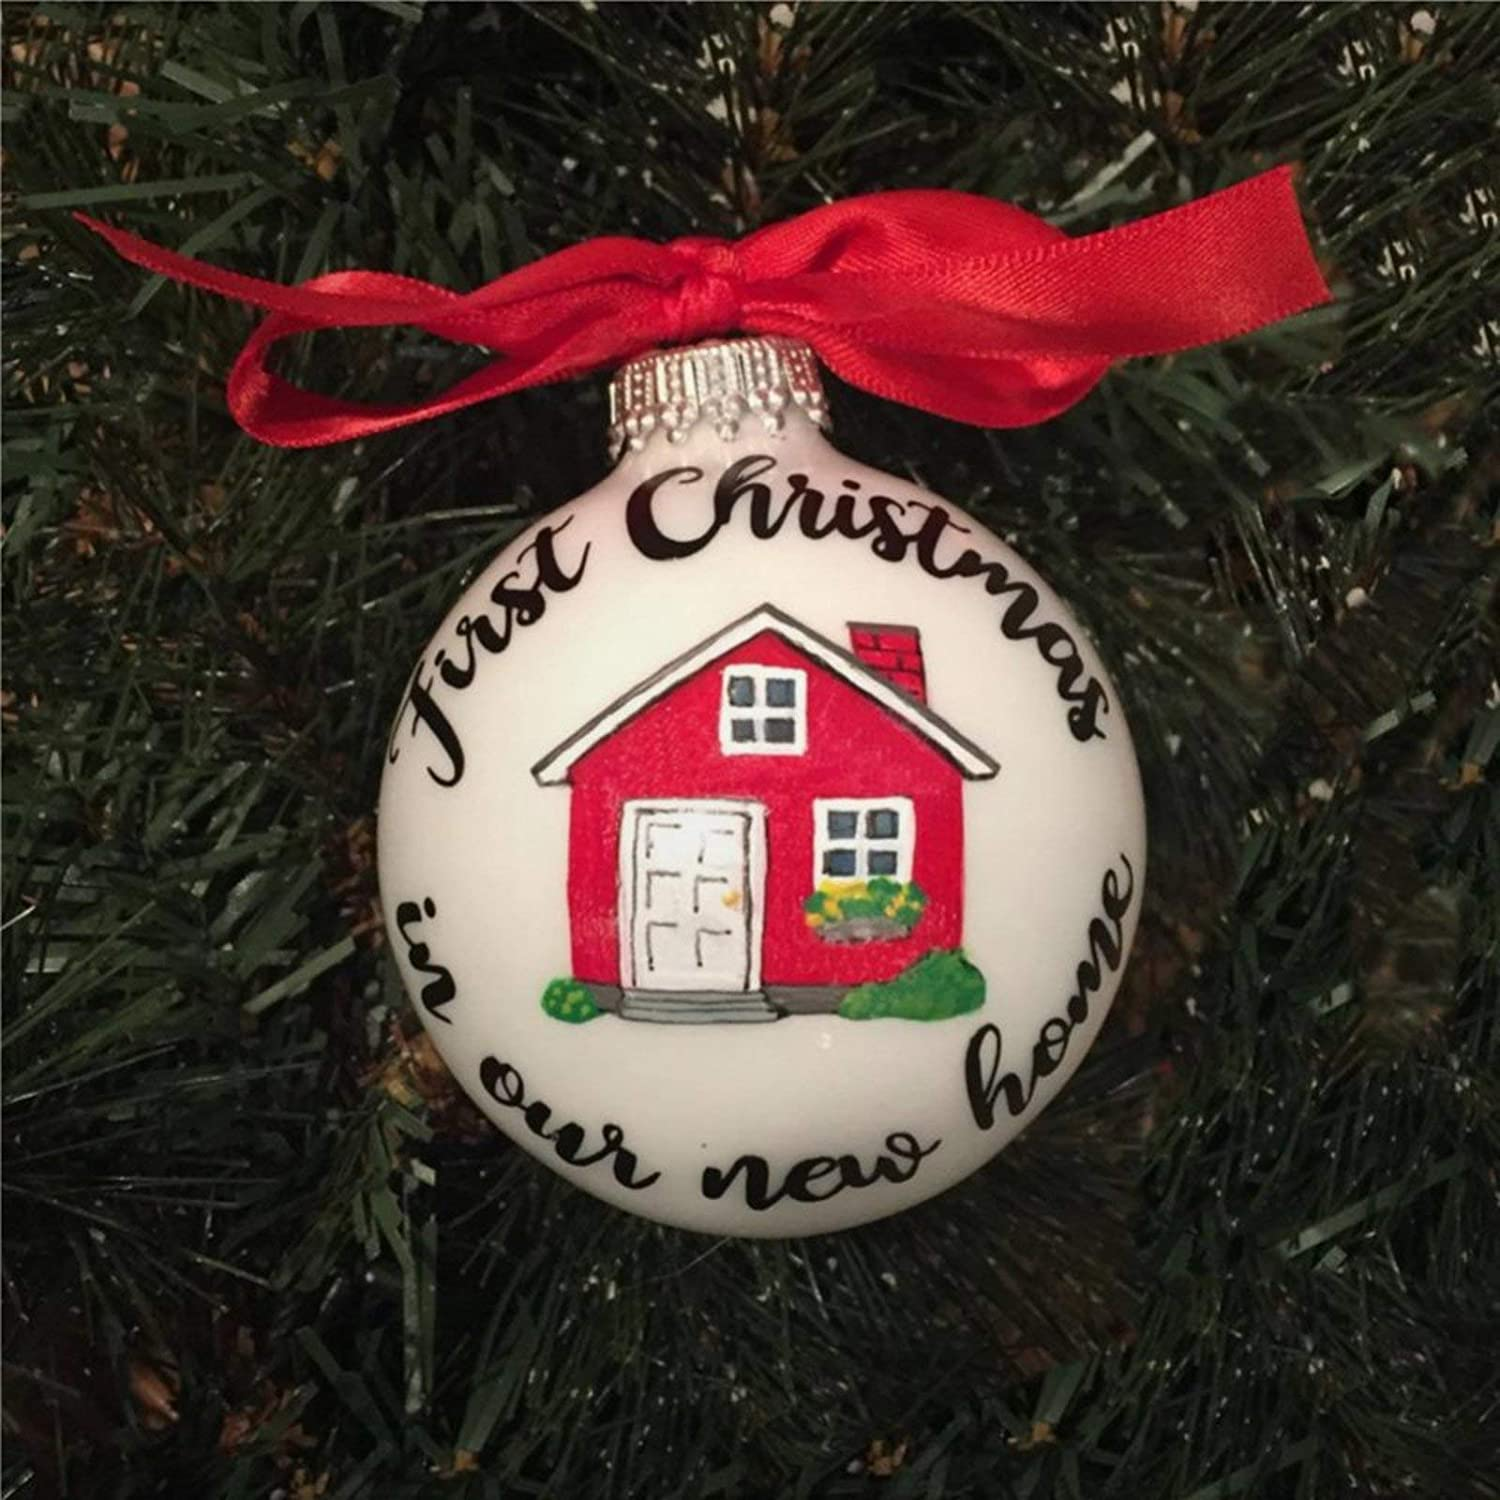 DONL9BAUER First in Our New Home Christmas Ball&Bauble with Presents, Acrylic Christmas Ornament for Family,Friends,Couple &Engagement Party.